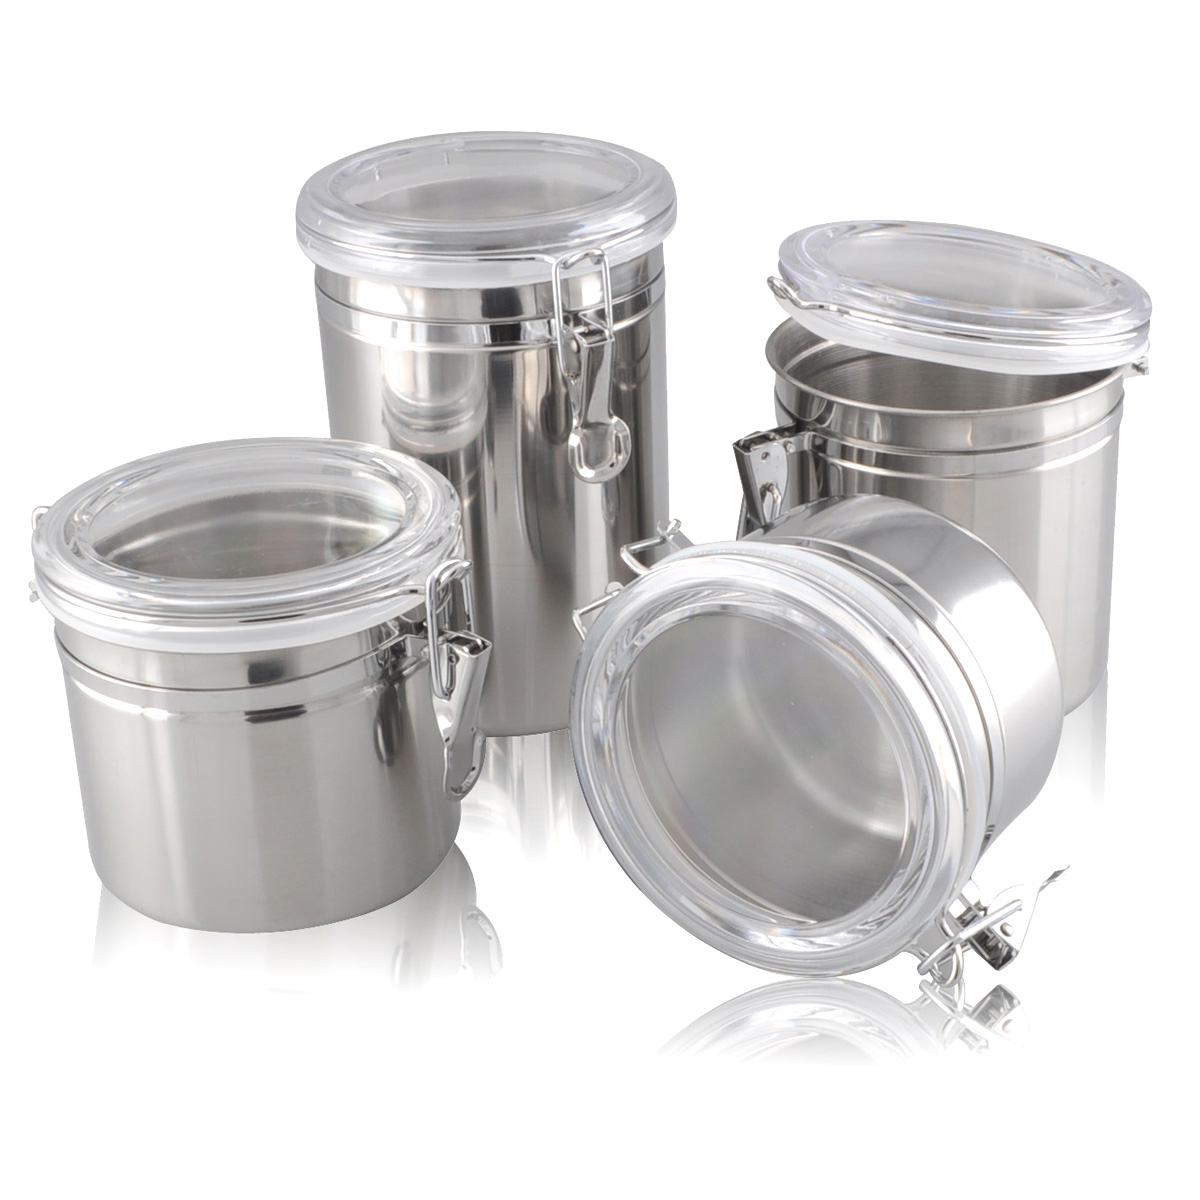 4pcs Stainless steel sealed cans storage tank plastic milk powder coffee bean tea candy Large(China (Mainland))